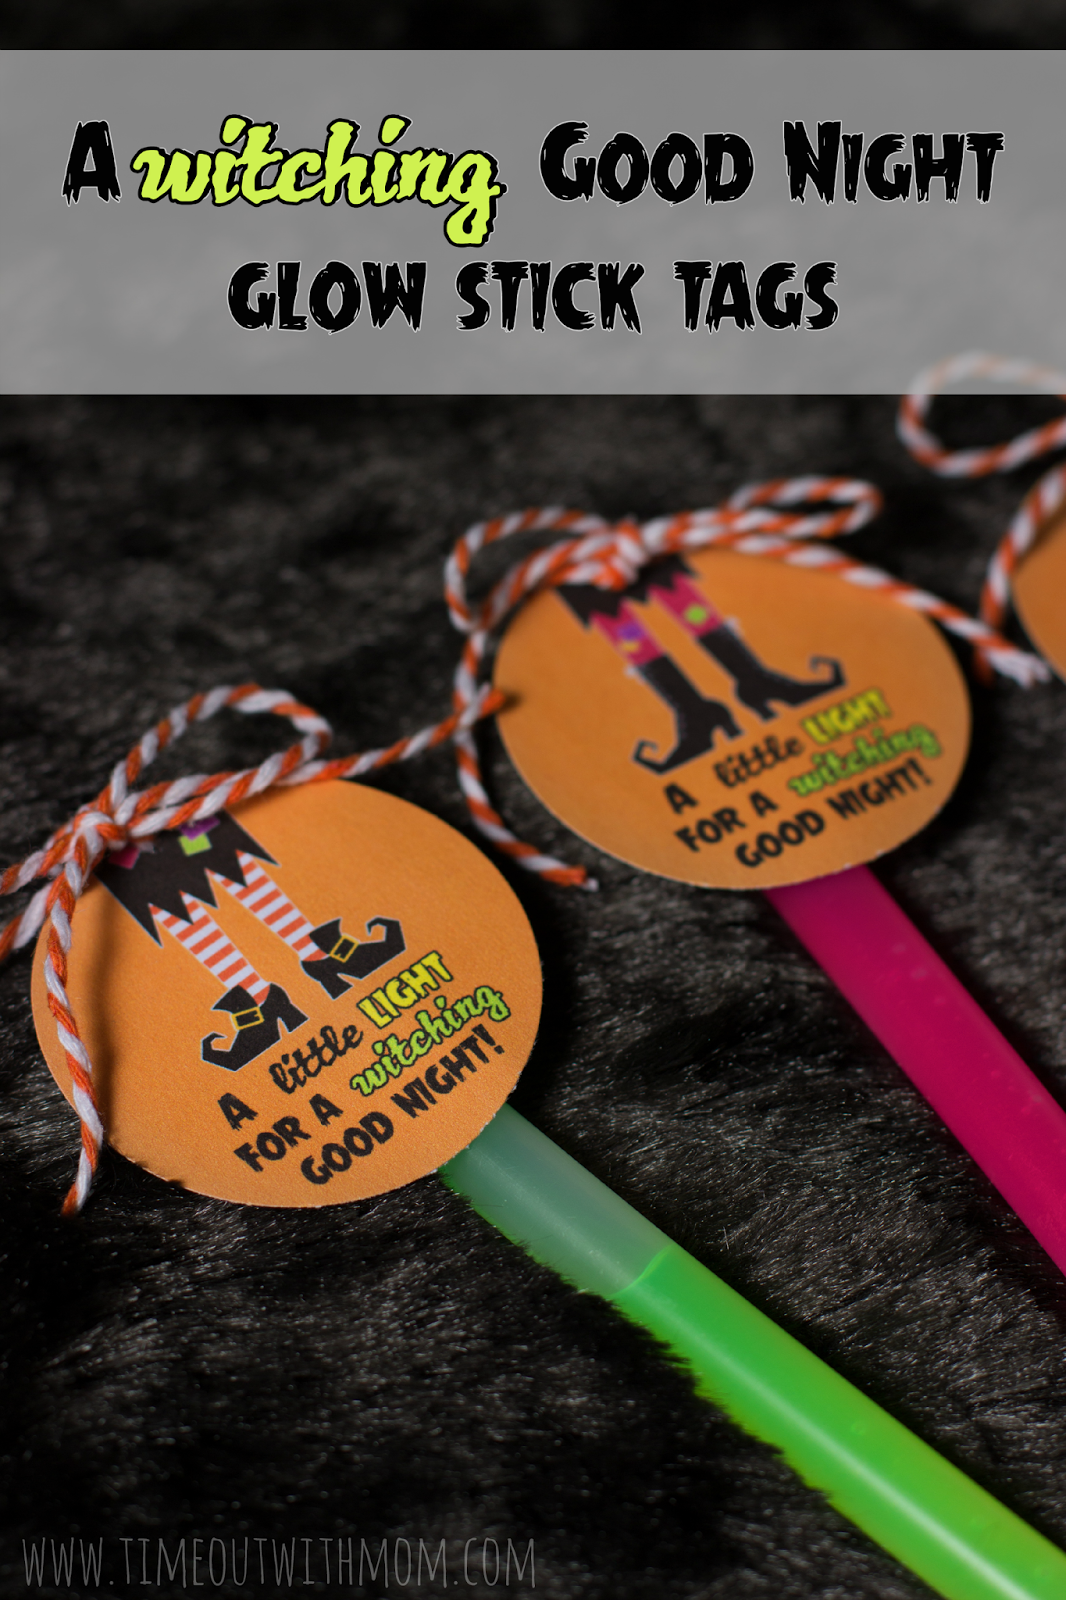 7 glow stick gift tags for halloween printables 4 mom a witching good night glow stick tags 01 negle Gallery